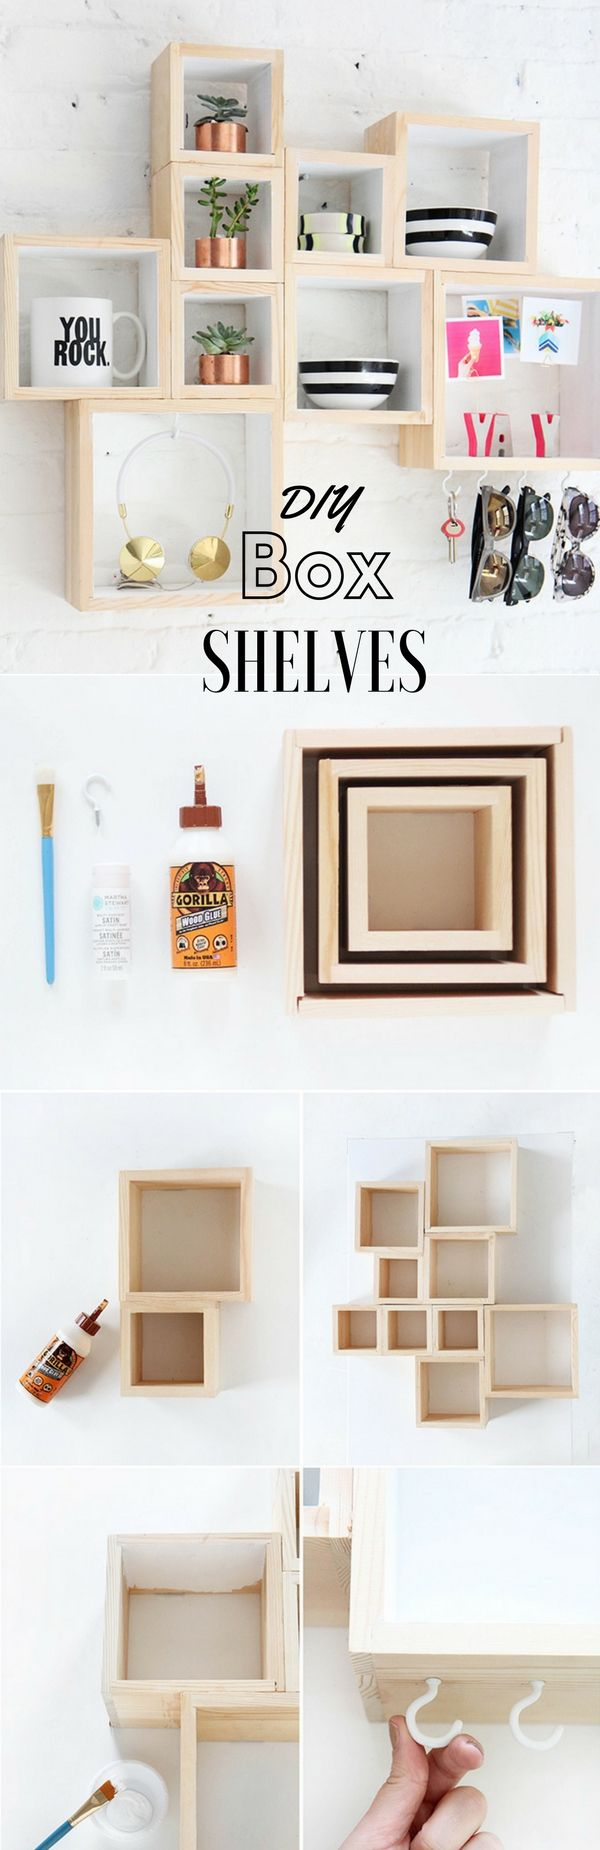 14 DIY Tricks for Home Decor | Green Yard - Page 10 | My Style ...